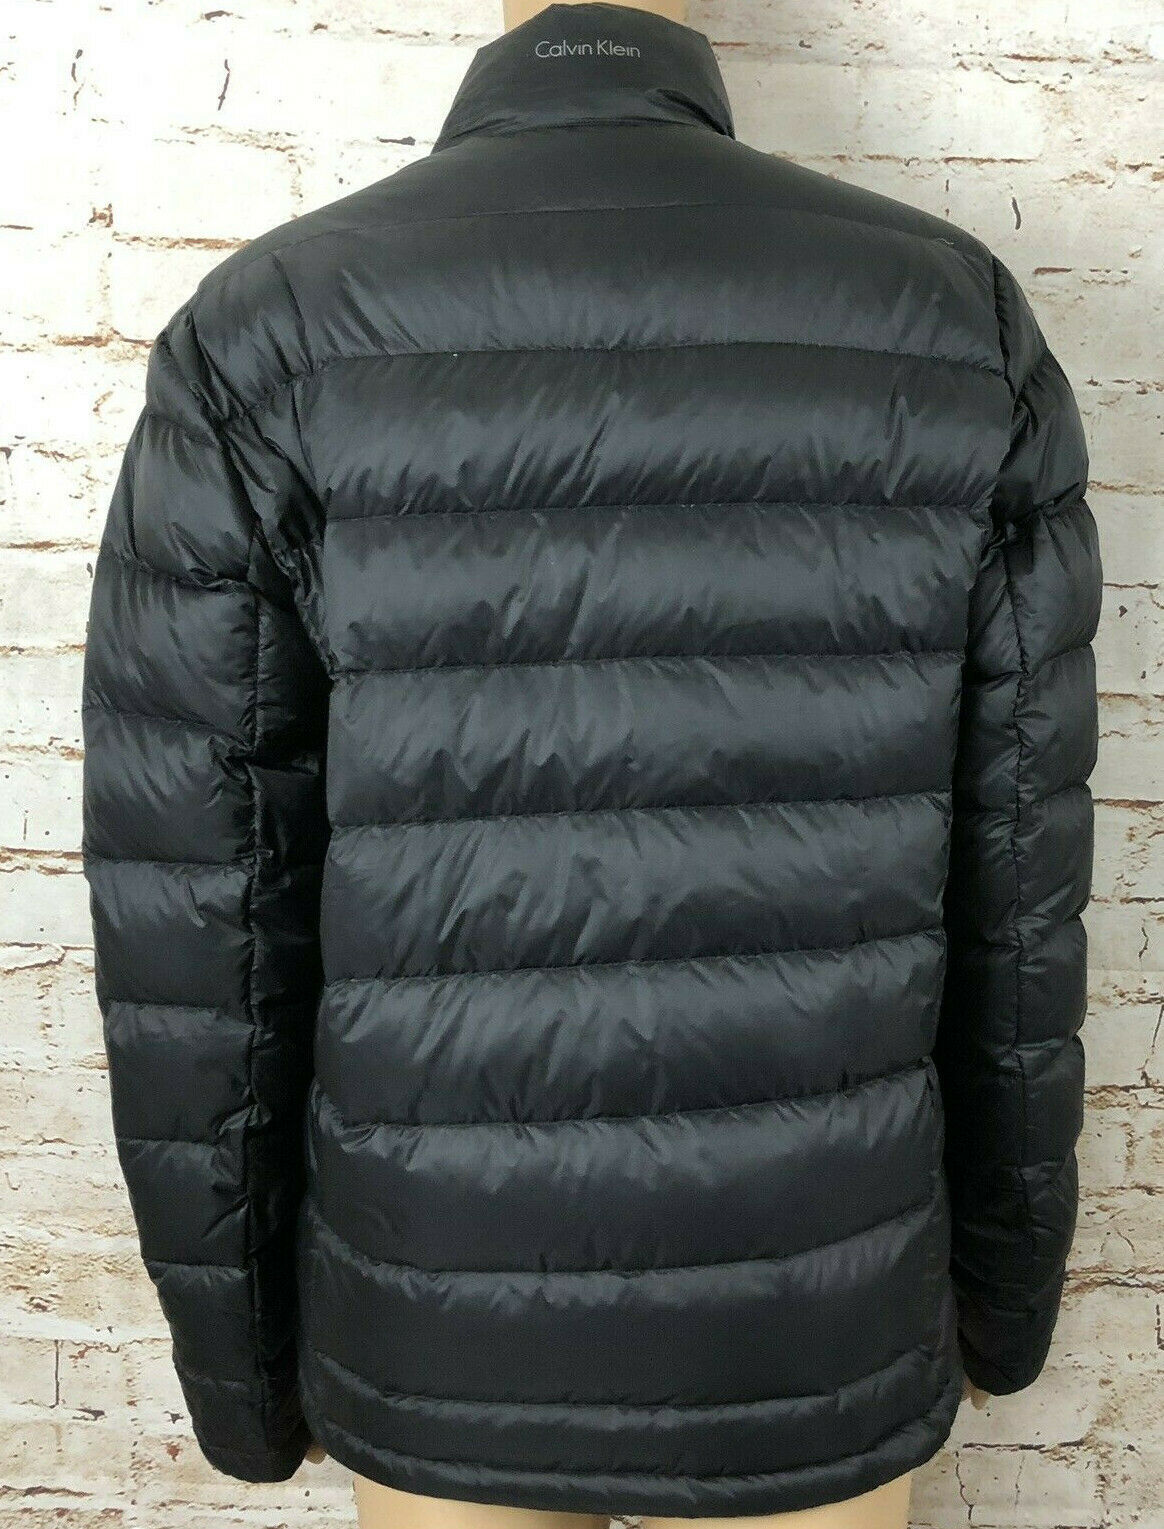 Calvin Klein Puffer Down Jacket Black Packable Lightweight Women's Size XS